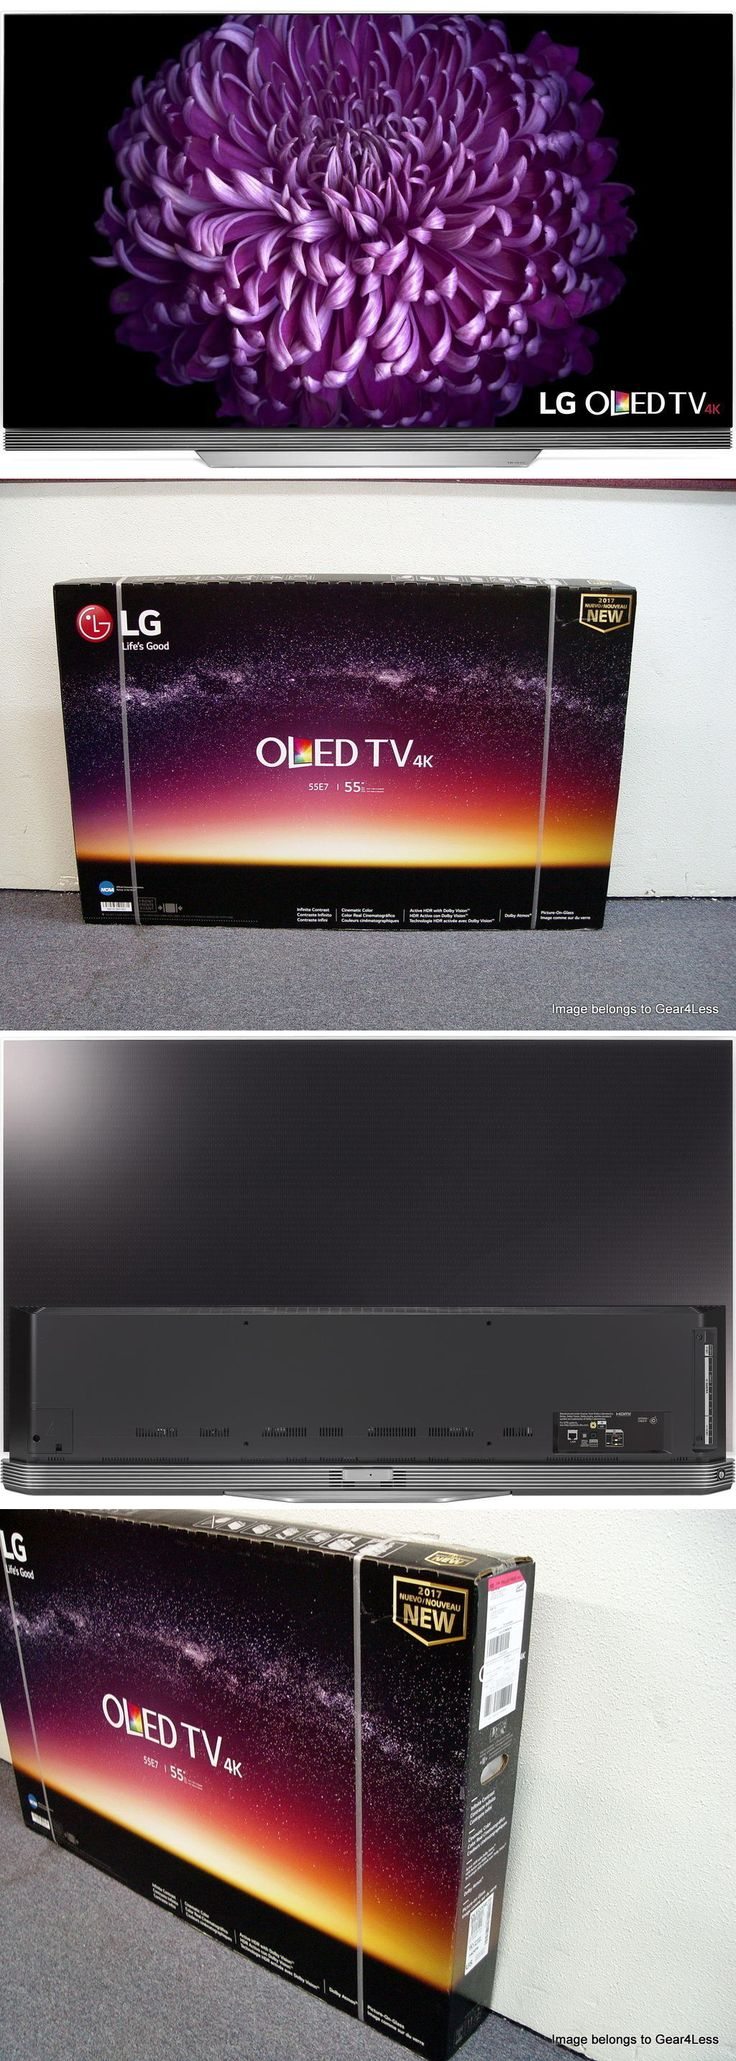 Televisions: Lg Oled55e7p 55 Smart Oled 4K Ultra Hd Tv Hdr 2017 Flat Screen Panel New Hdtv -> BUY IT NOW ONLY: $2223.95 on eBay!